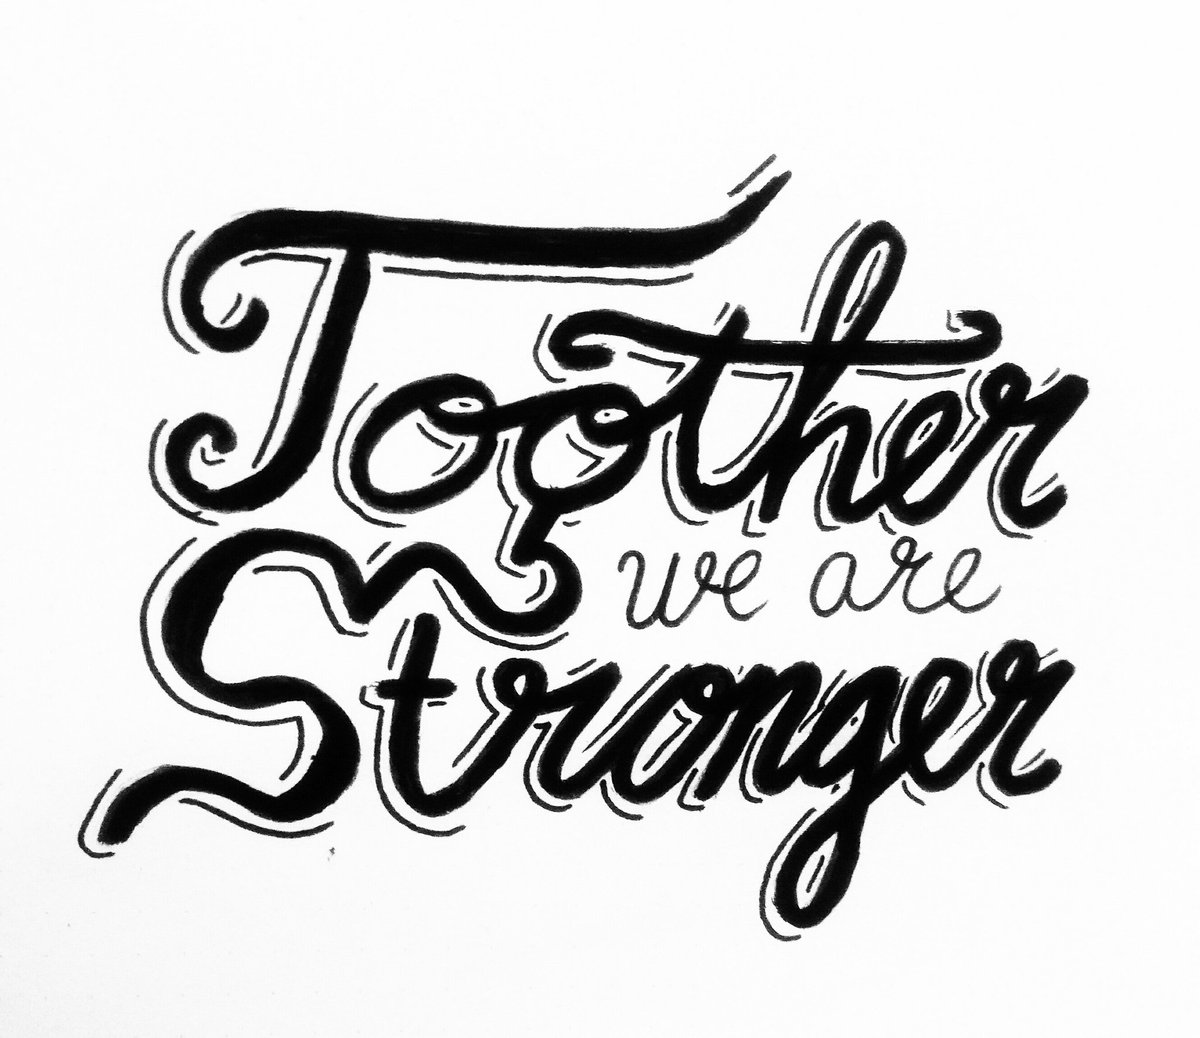 Stronger together https://t.co/aTWj9ym5xn